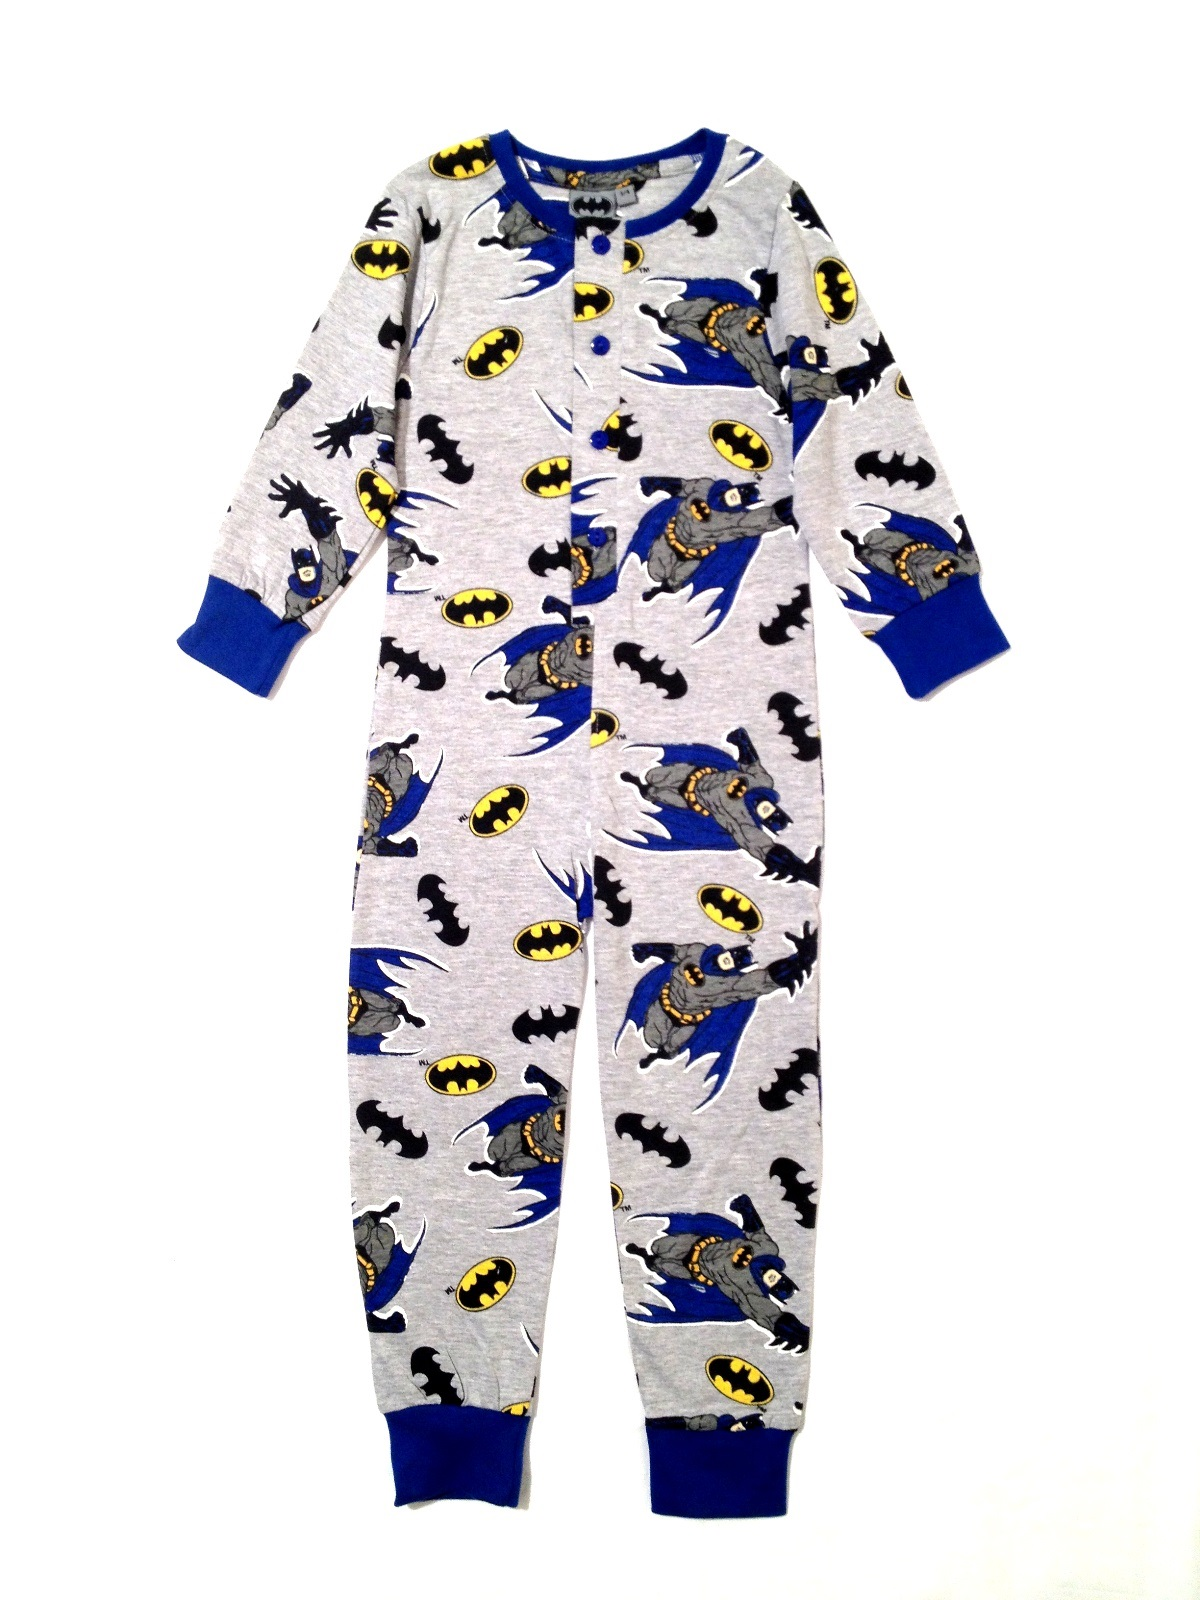 Shop for kids cotton pajamas online at Target. Free shipping on purchases over $35 and save 5% every day with your Target REDcard.